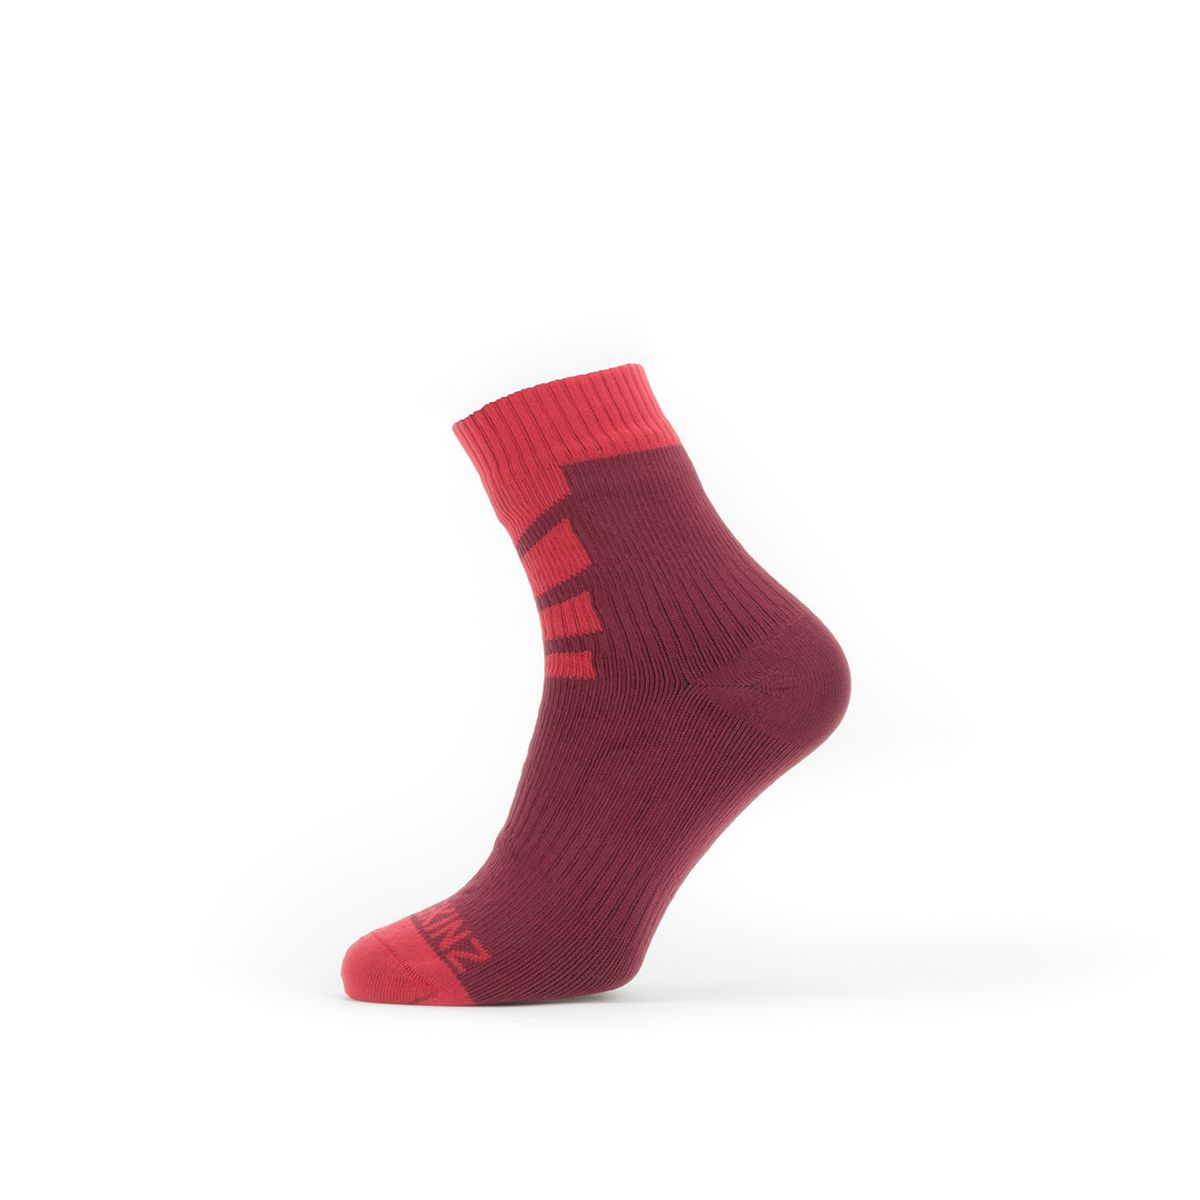 WATERPROOF WARM WEATHER ANKLE LENGTH SOCK wasserdichte Socken